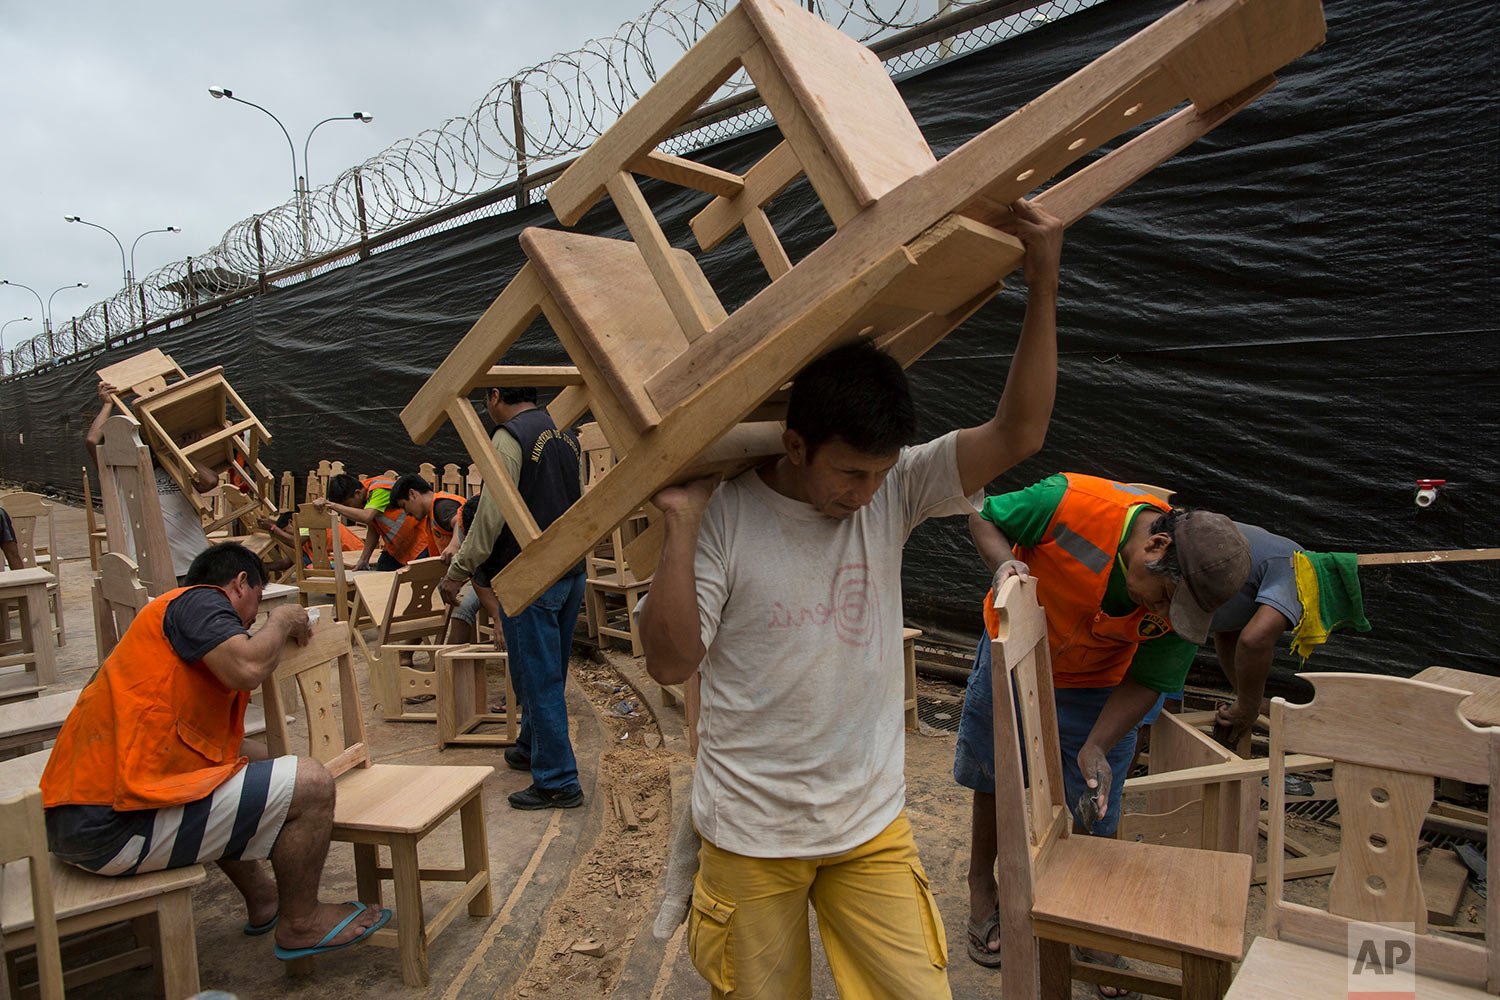 In this Jan. 12, 2018 photo, inmates build the chairs that will be used during events with Pope Francis in Puerto Maldonado, Madre de Dios province, Peru. Prisoners convicted of crimes like robbery and drug trafficking at the prison in the Peruvian Amazon are using their time behind bars to build simple wooden chairs that indigenous leaders will use while meeting with Pope Francis. (AP Photo/Rodrigo Abd)| See these photos on AP Images